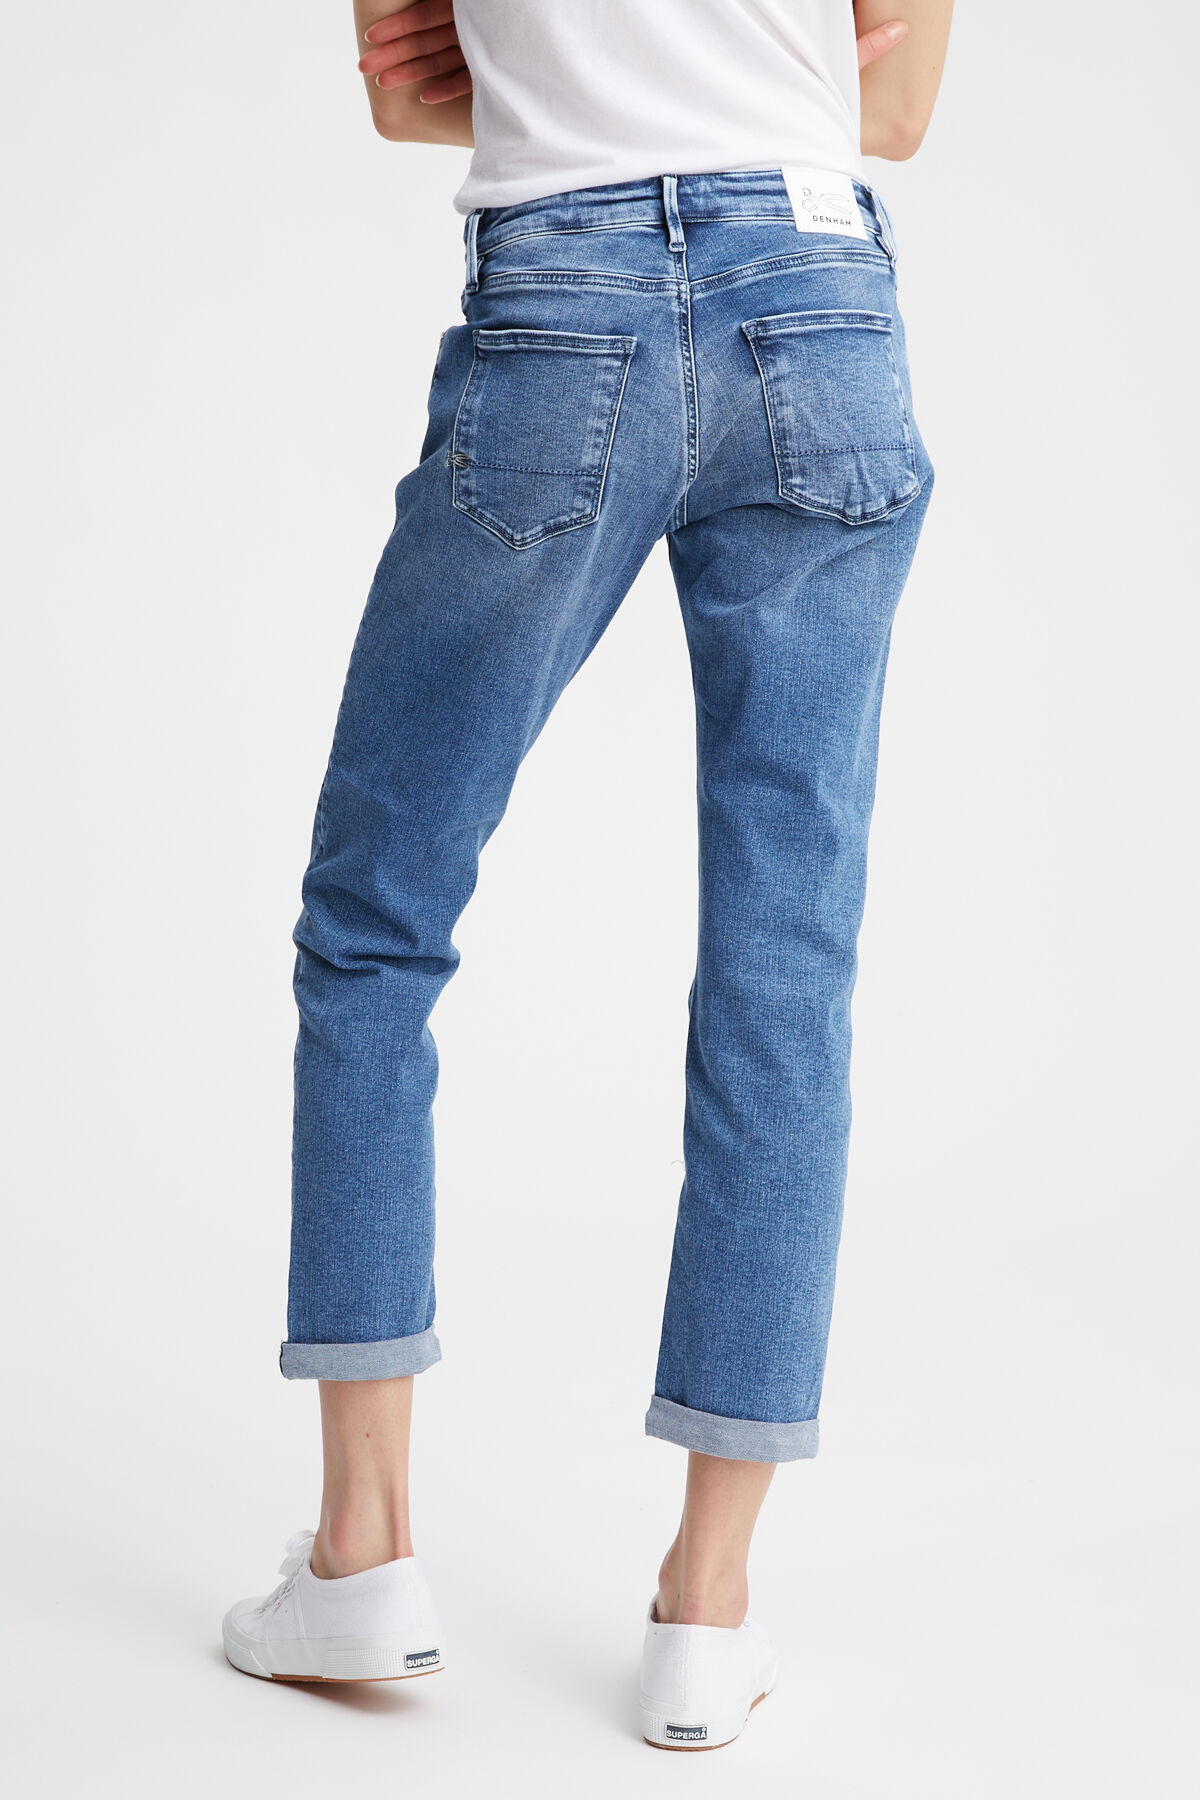 MONROE Heavy Fade Denim - Girlfriend Fit